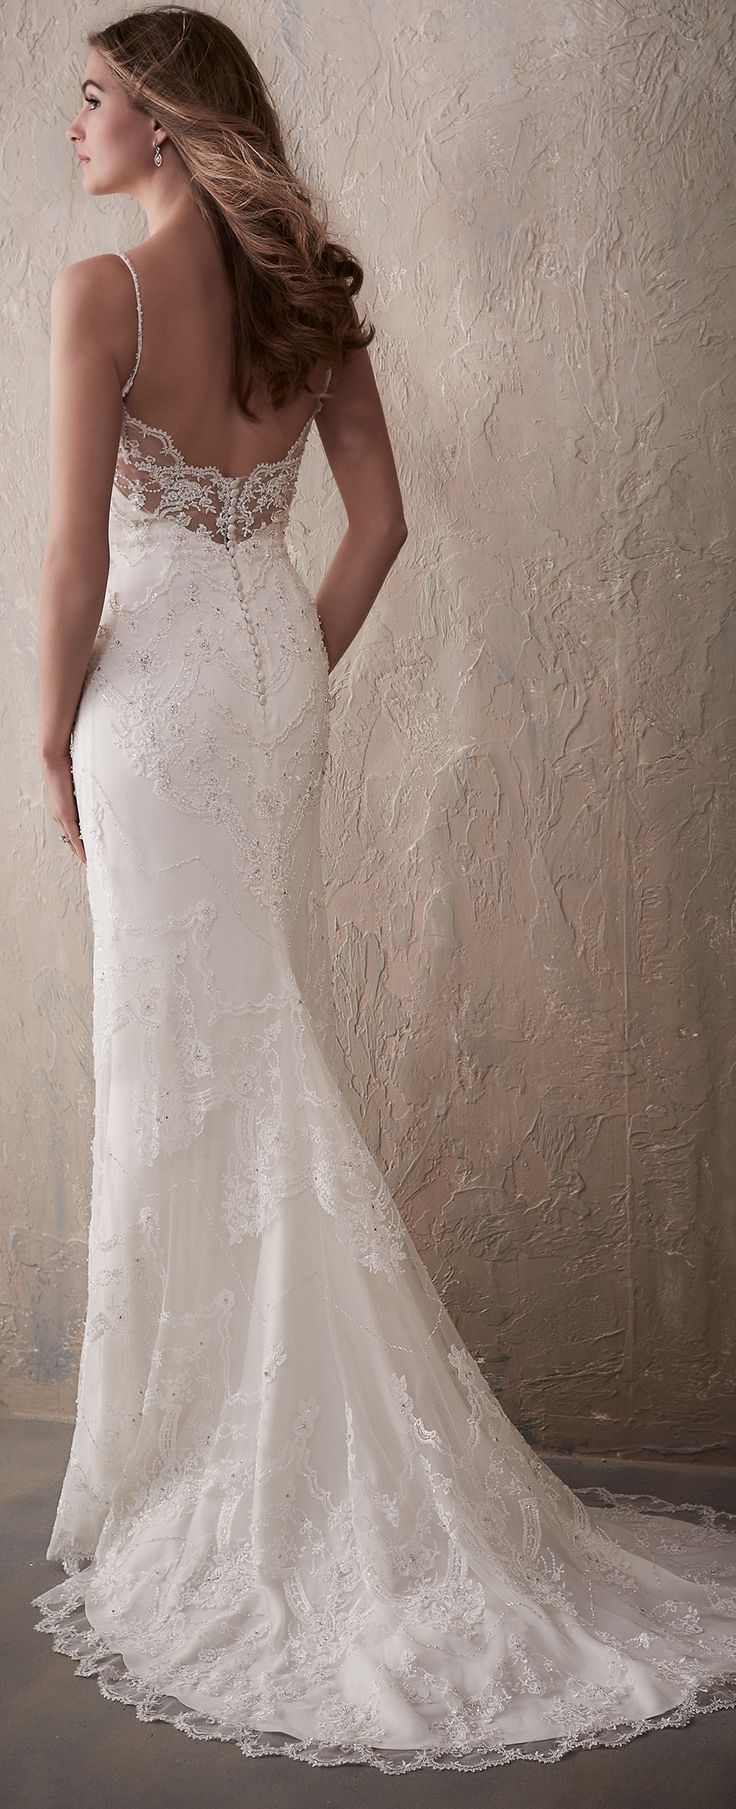 Popular Lace low back fitted Wedding Dress by Adrianna Papell Platinum HouseofWuBrands AdriannaPapellPlatinum